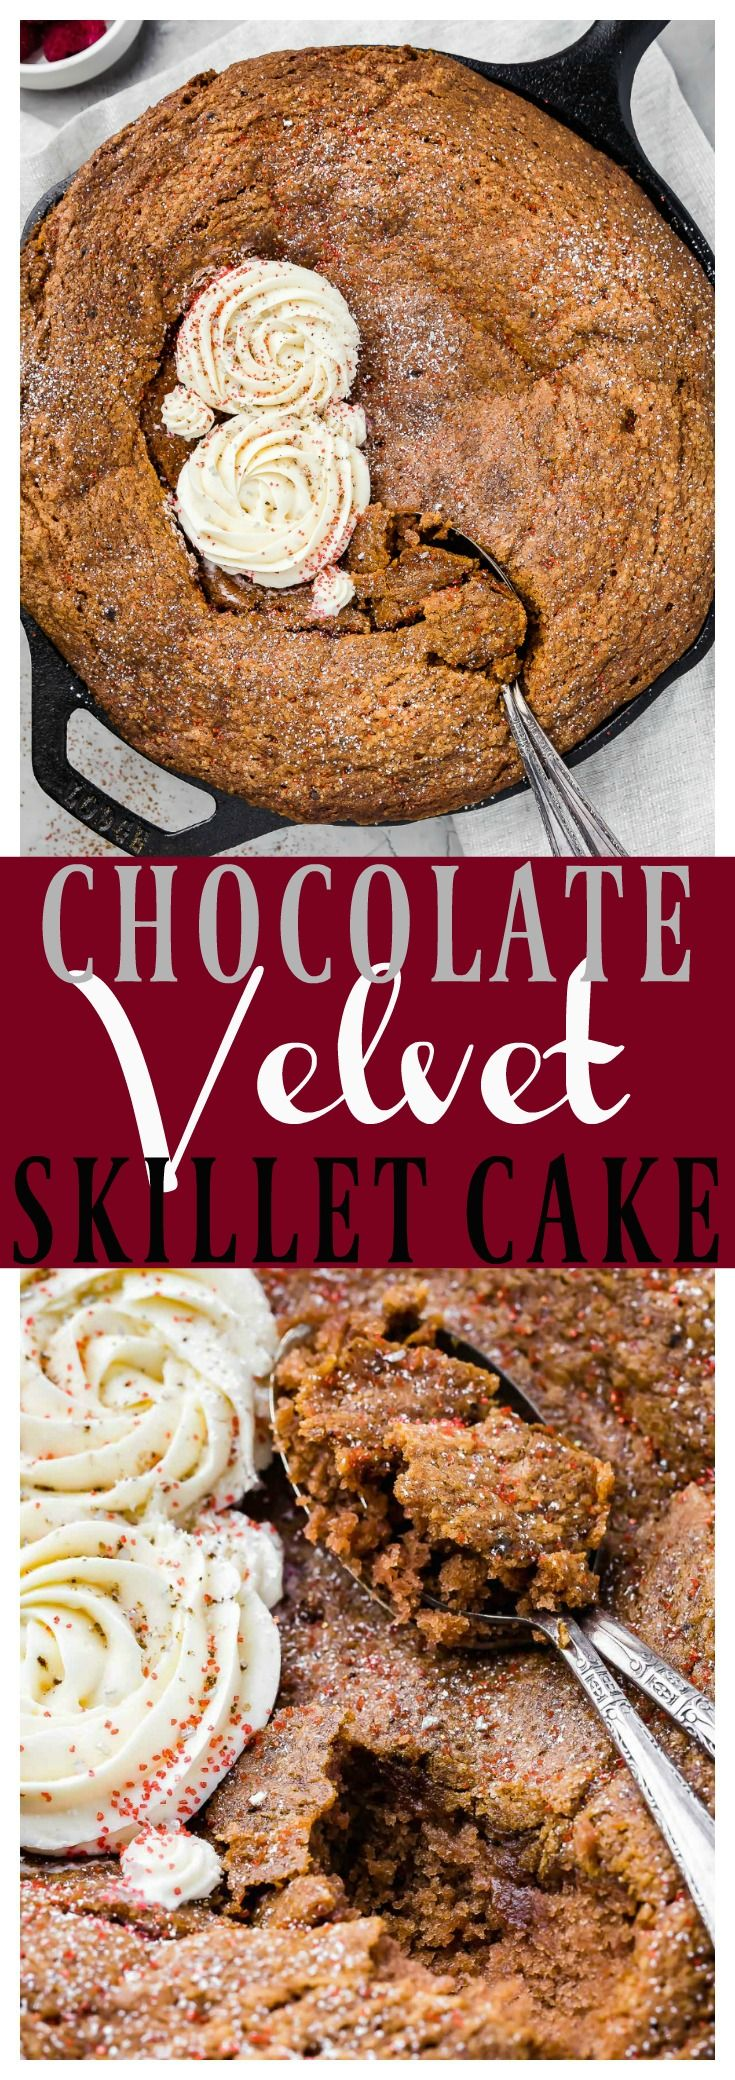 Chocolate Velvet Skillet Cake with Cream Cheese Frosting [& recipe video] | This Skillet Cakeis a spin on red velvet cake and can be served TWO ways! Fresh from the oven for a molten chocolate interior, or allowed to cool on the counter for a moist, slice-able cake. #chocolate #cake #recipe